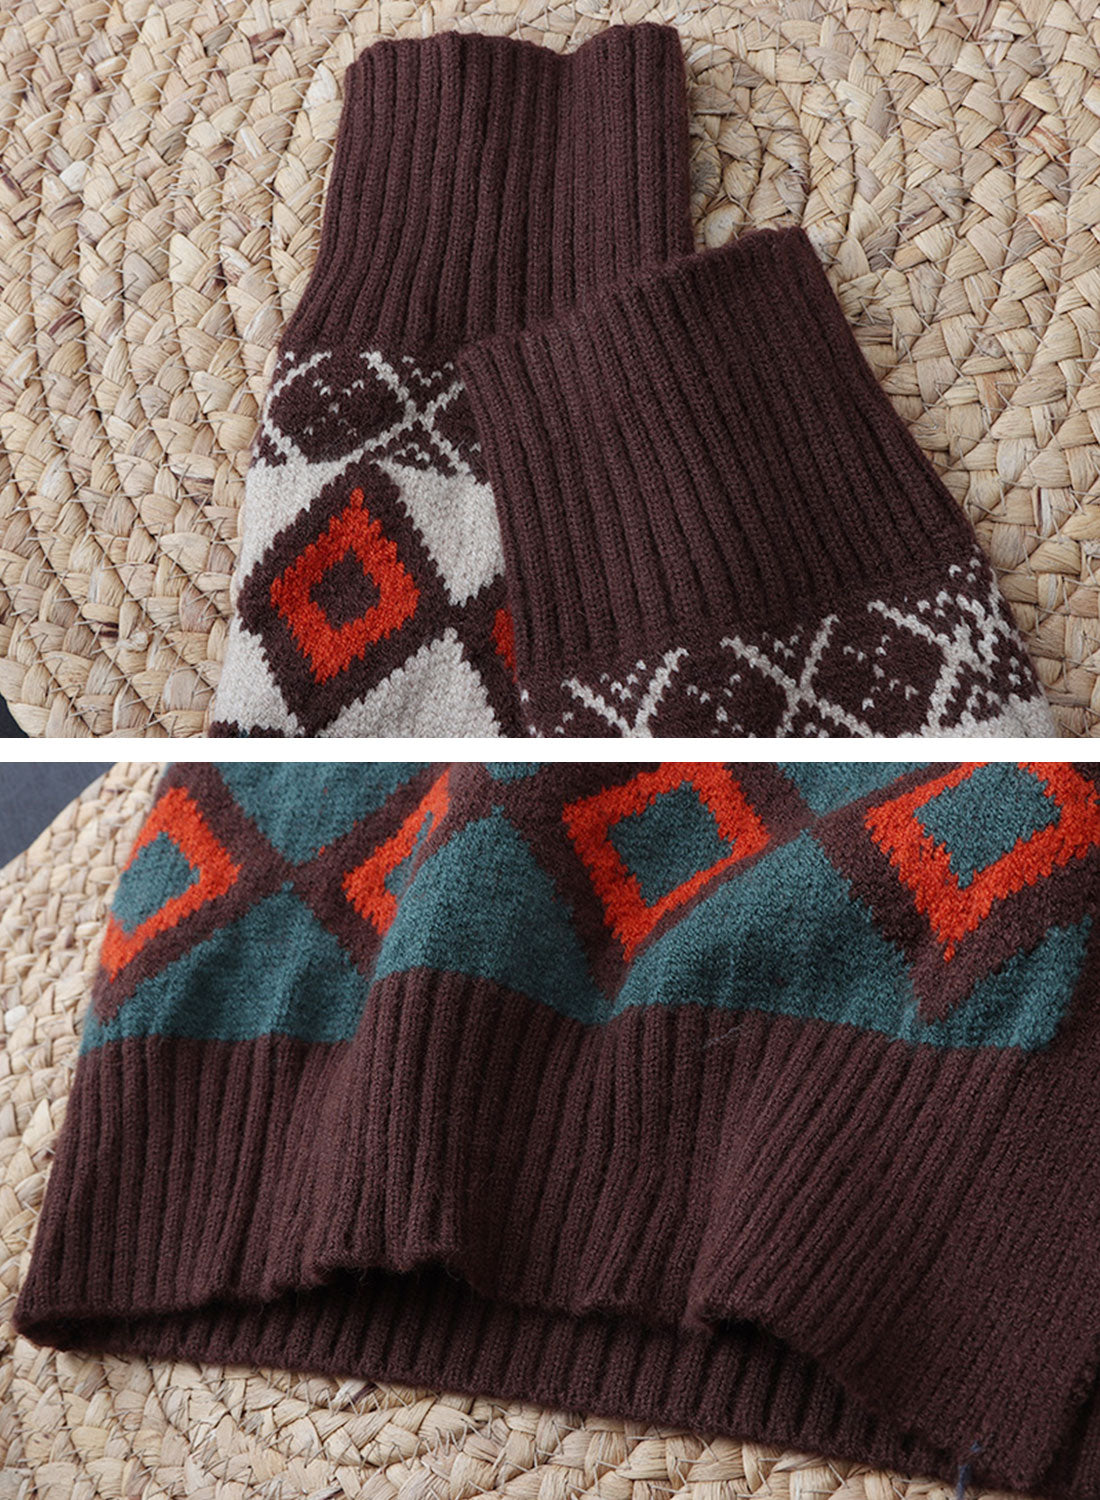 You Know Vintage Cardigan Sweater Details 2